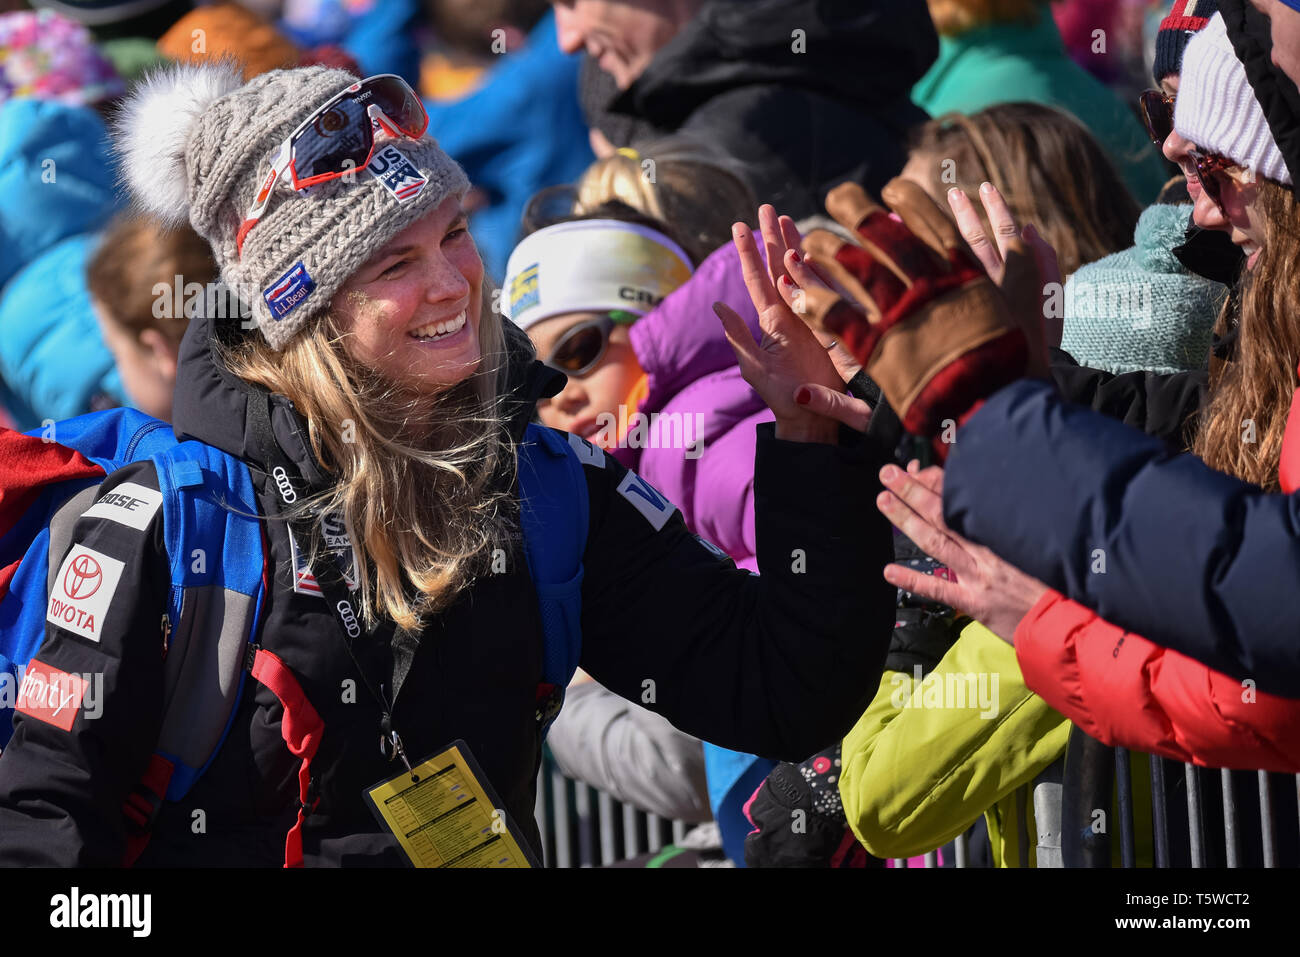 US Cross Country Ski Team member Jessie Diggins (left) high fives fans at the FIS World Cup cross country ski races in Quebec City, Canada, 2019. Stock Photo